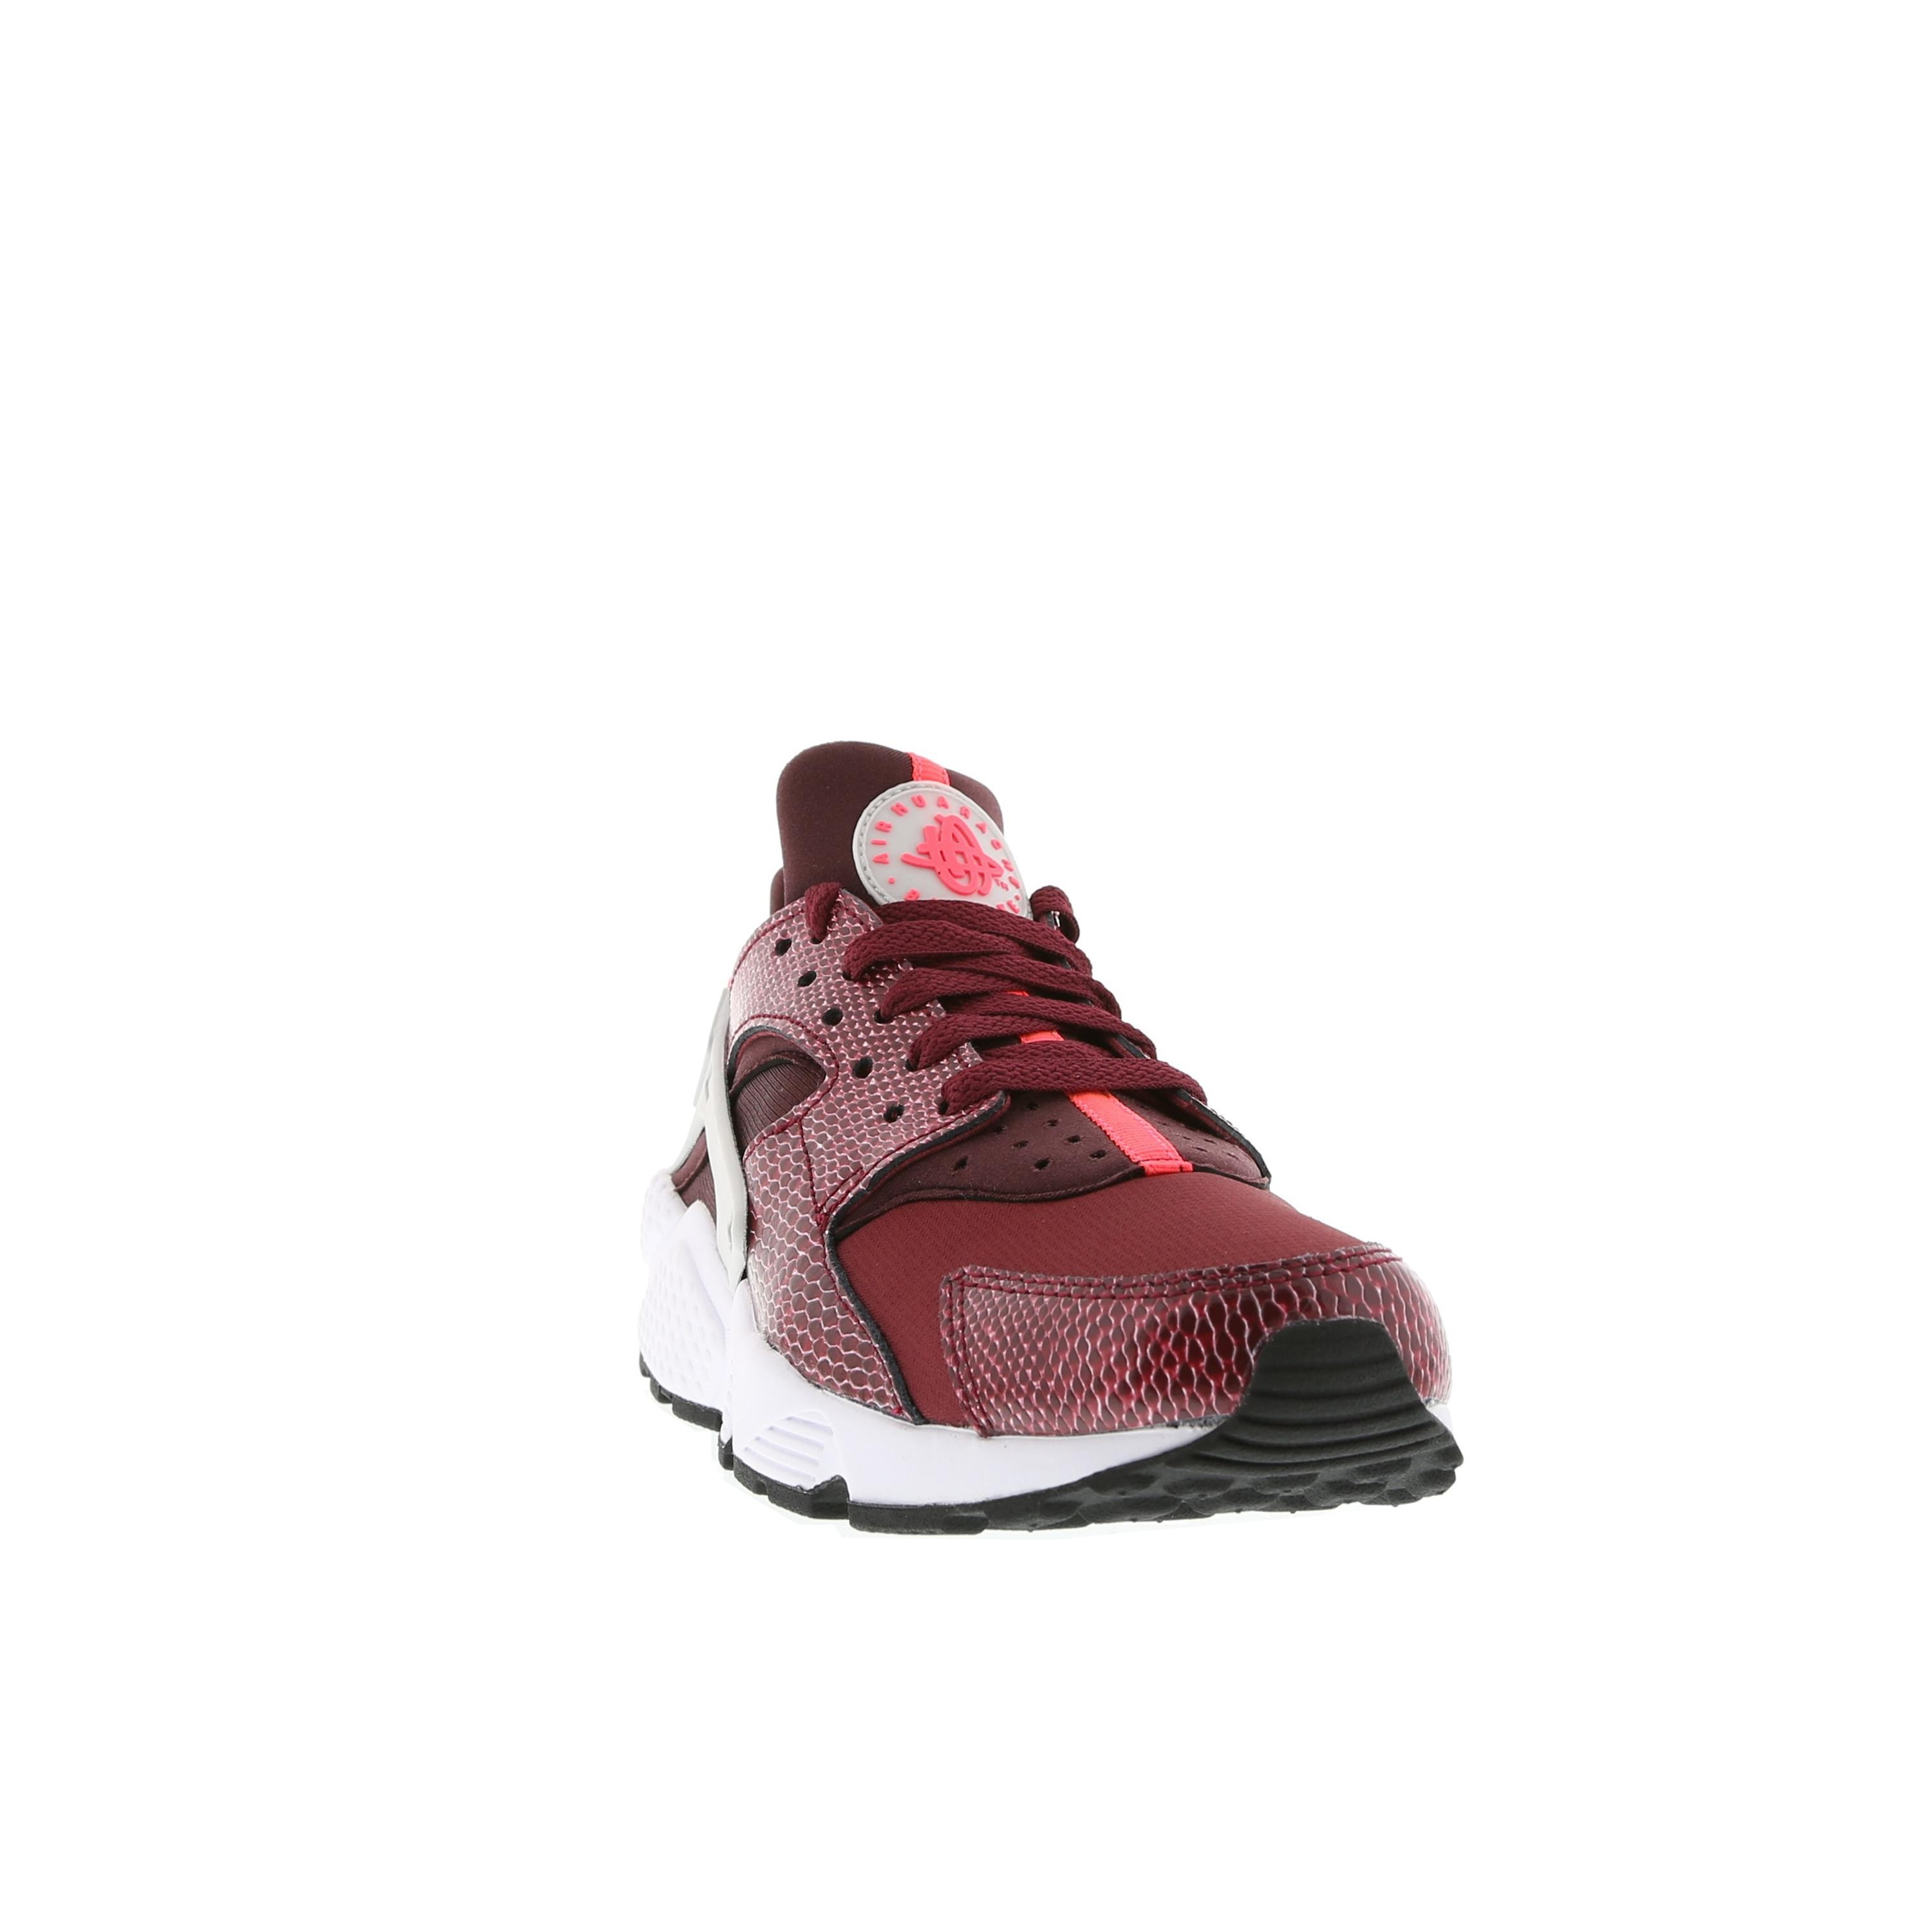 Nike WMNS Air Huarache 634835-666 Team Red/Hyper Punch/Deep Burgundy Womens Shoe